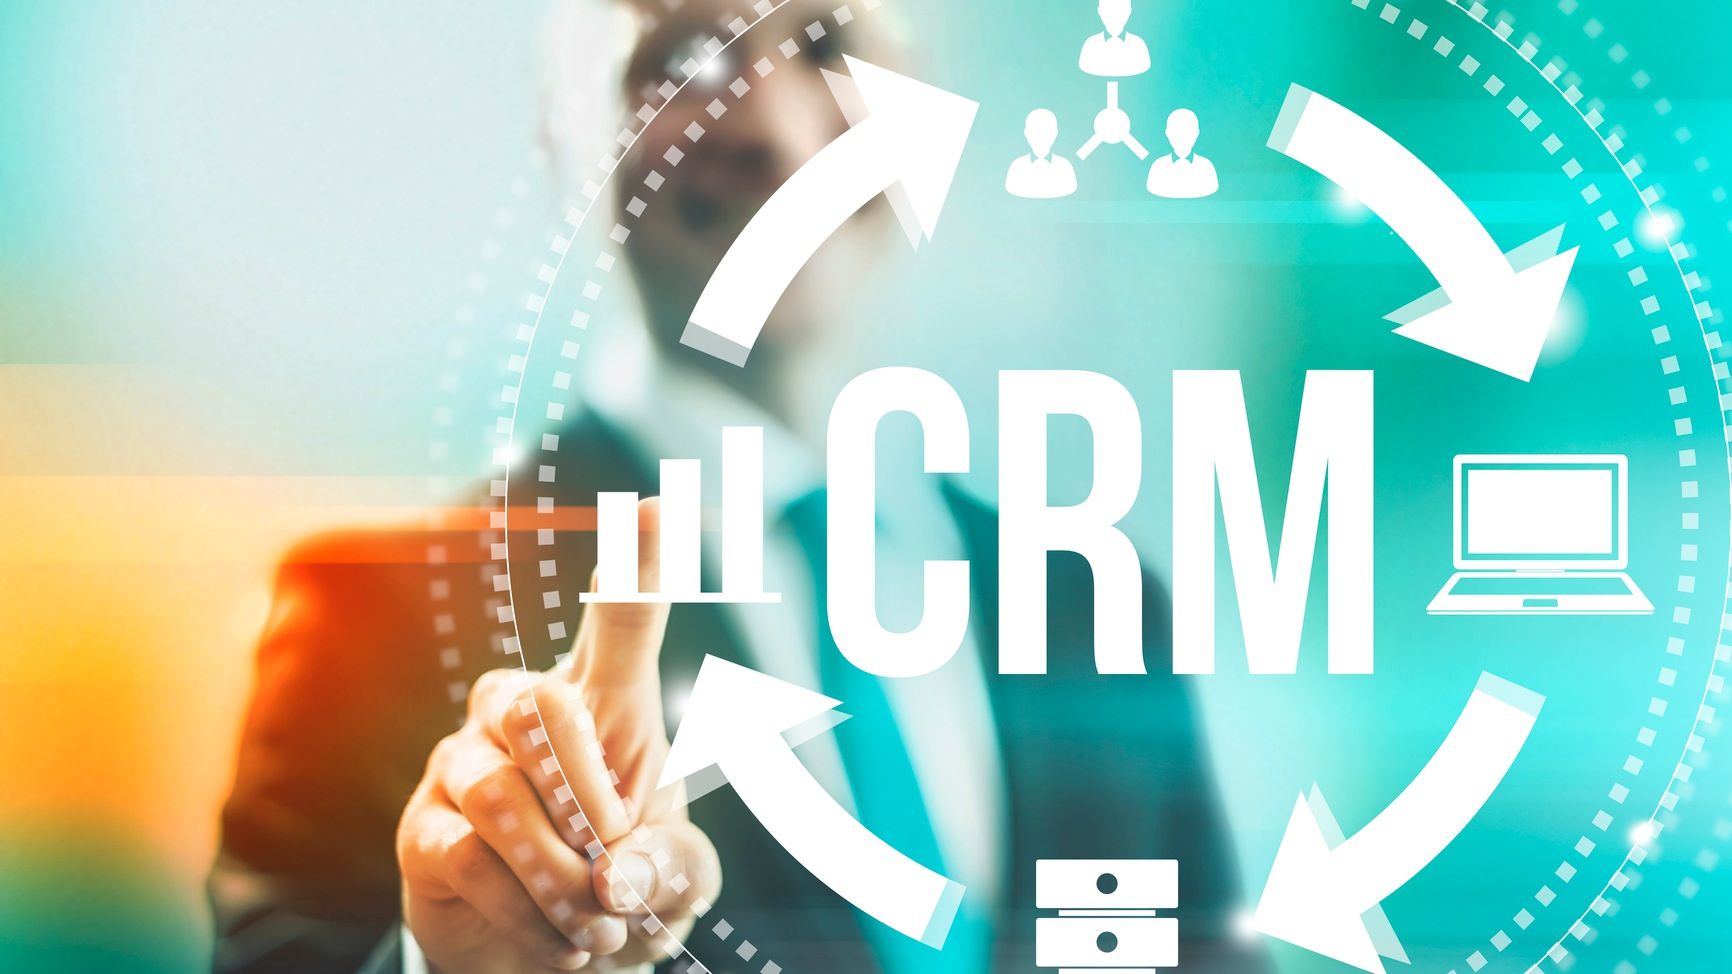 crm in banking sector new age banks marketing essay New age technology within microsoft dynamics 365 has made access to customer information simple, aiding banks in providing appropriate and effective support predict customers' needs and meet them with personal attention to build relationships and revenue.